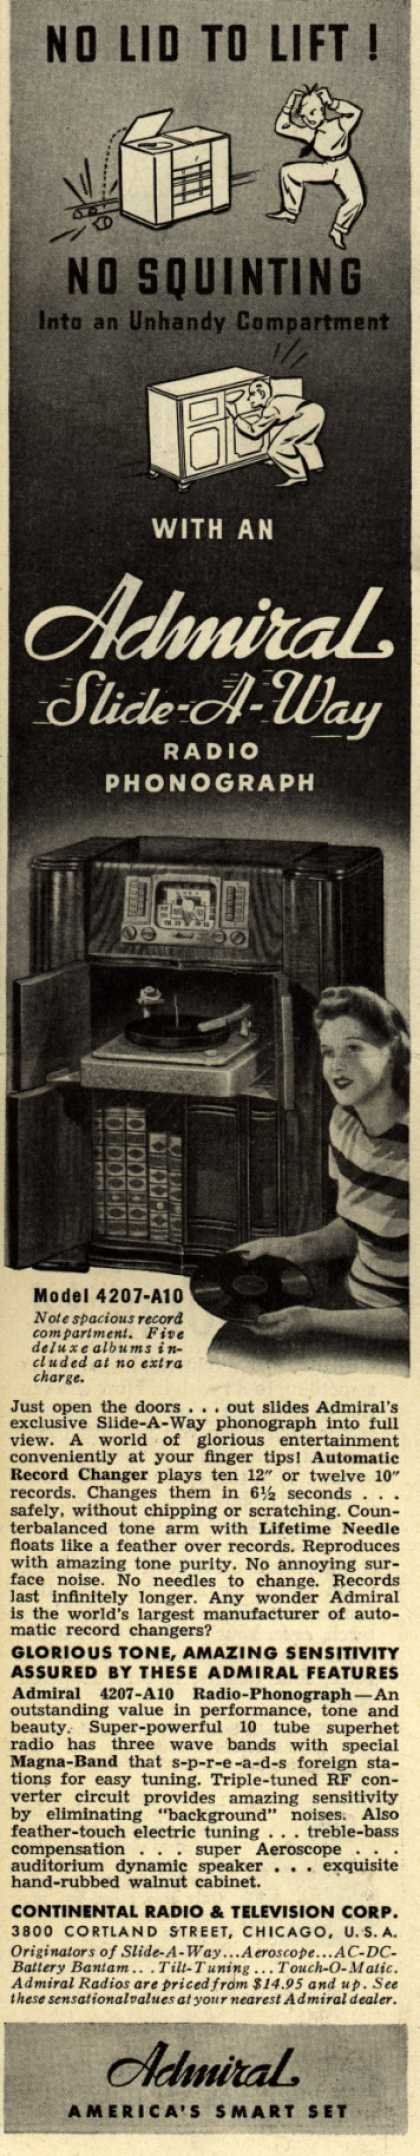 Admiral Radio's Radio – No Lid to Lift! No squinting (1941)